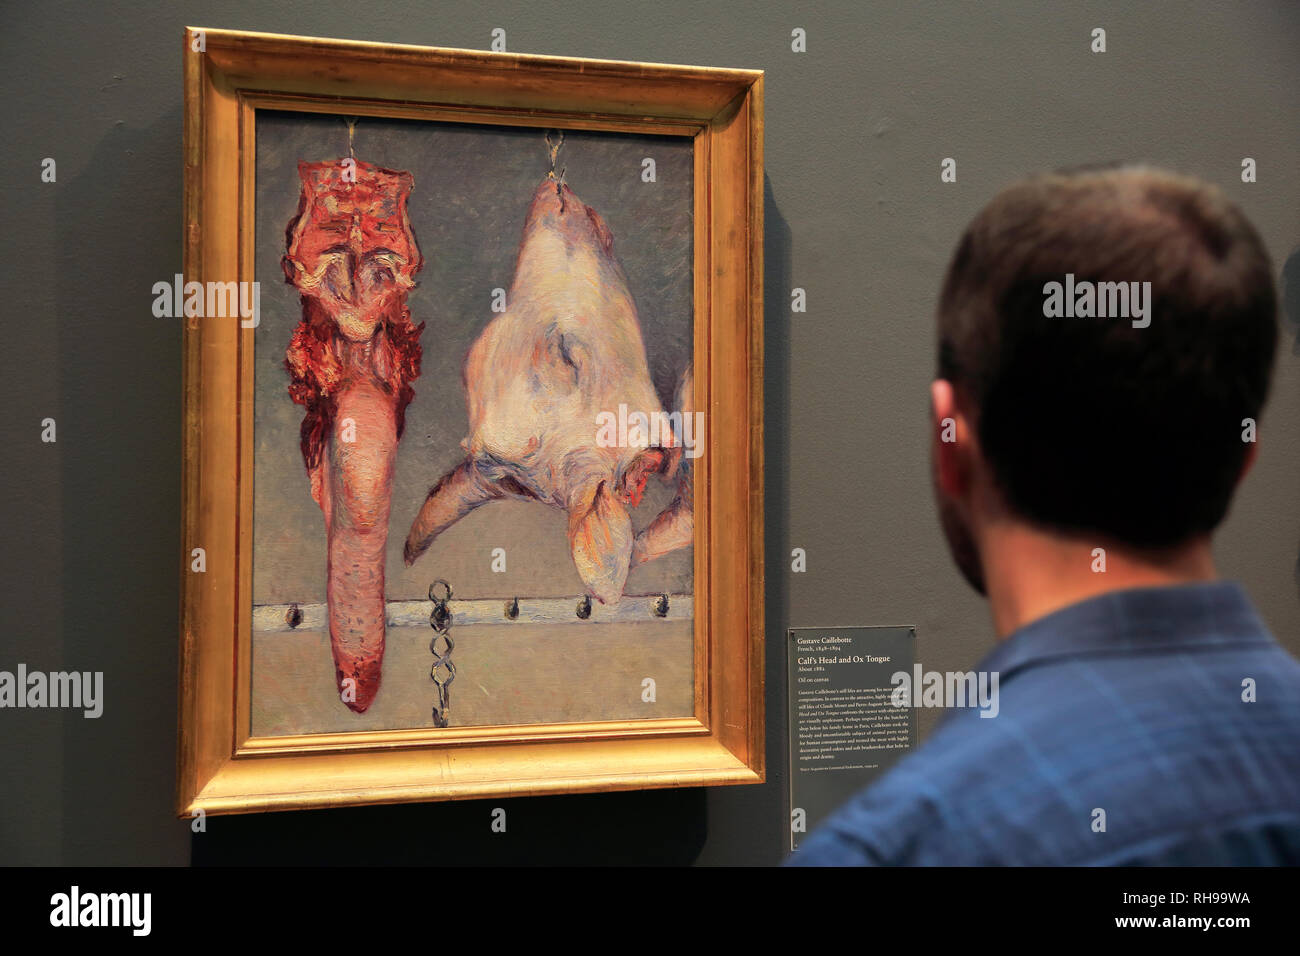 A visitor looking at Gustave Caillebotte's Calf's Head and Ox Tongue in Art Institute of Chicago. Chicago.Illinois. USA - Stock Image